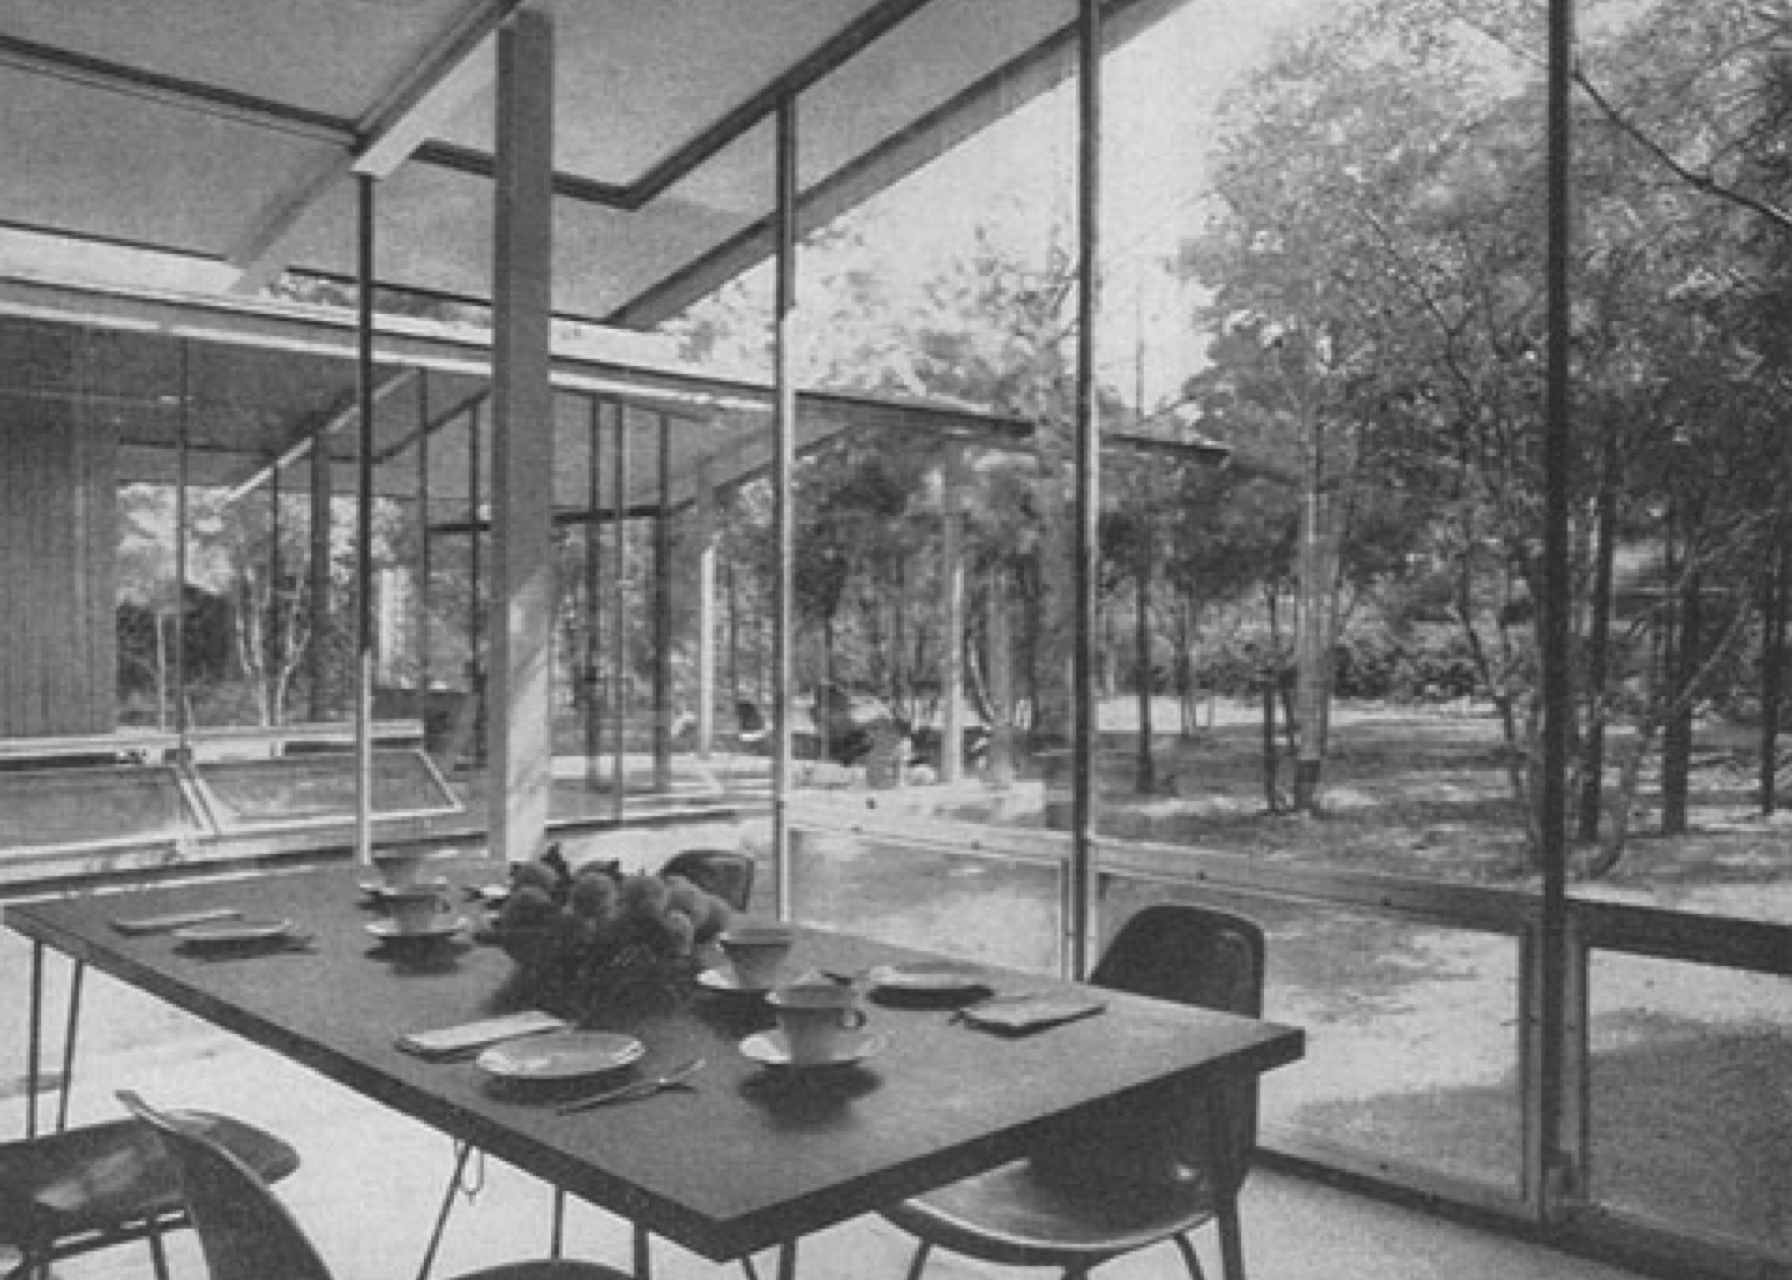 John Desmond, dining room, The Desmond Residence, 903 Greenlawn,John Desmond Papers, Louisiana and Lower Mississippi Valley Collections, LSU Libraries.